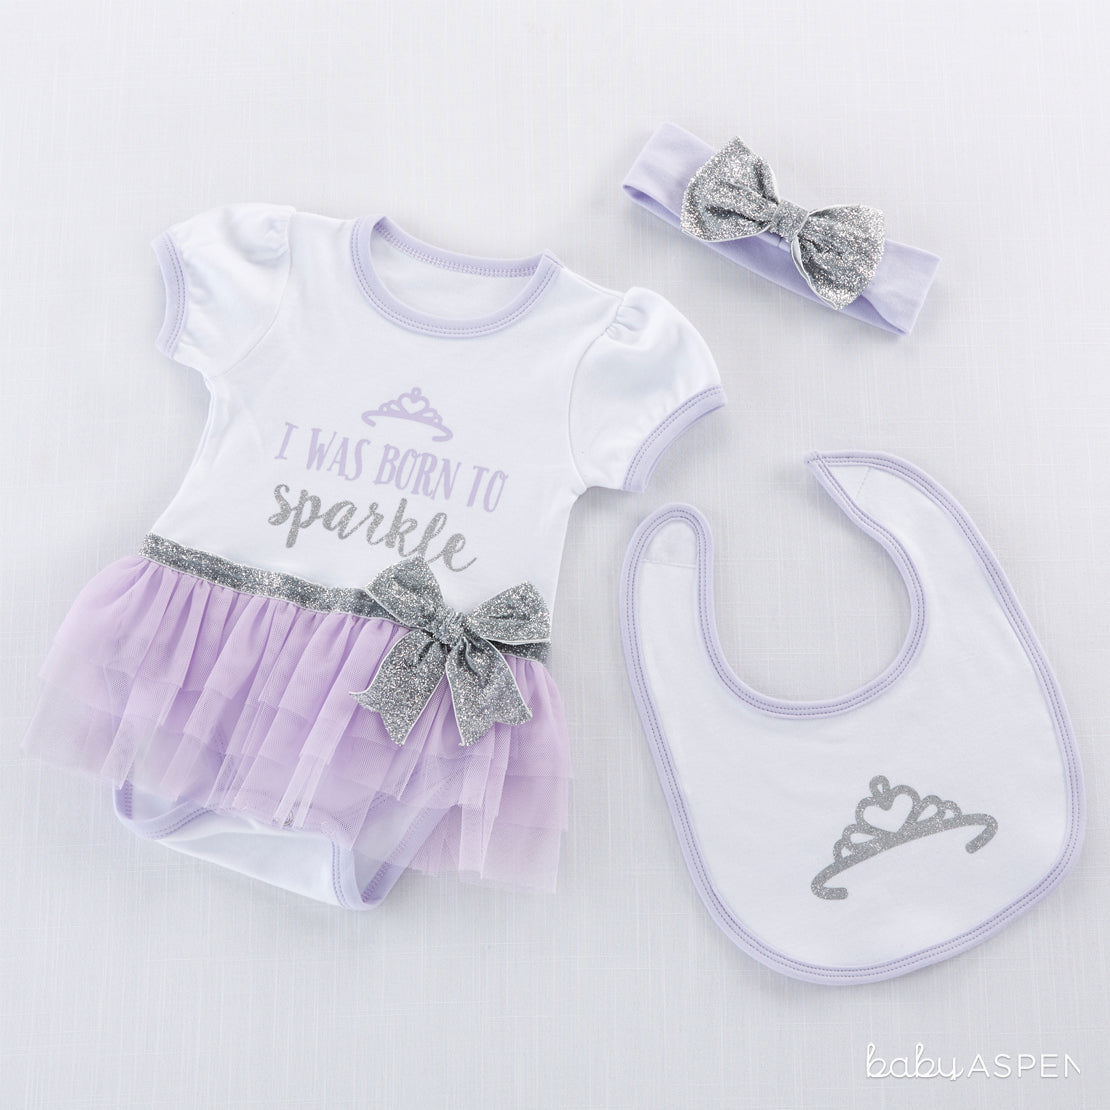 Born To Sparkle Outfit | Magical Gifts For Your Fairy Princess | Baby Aspen